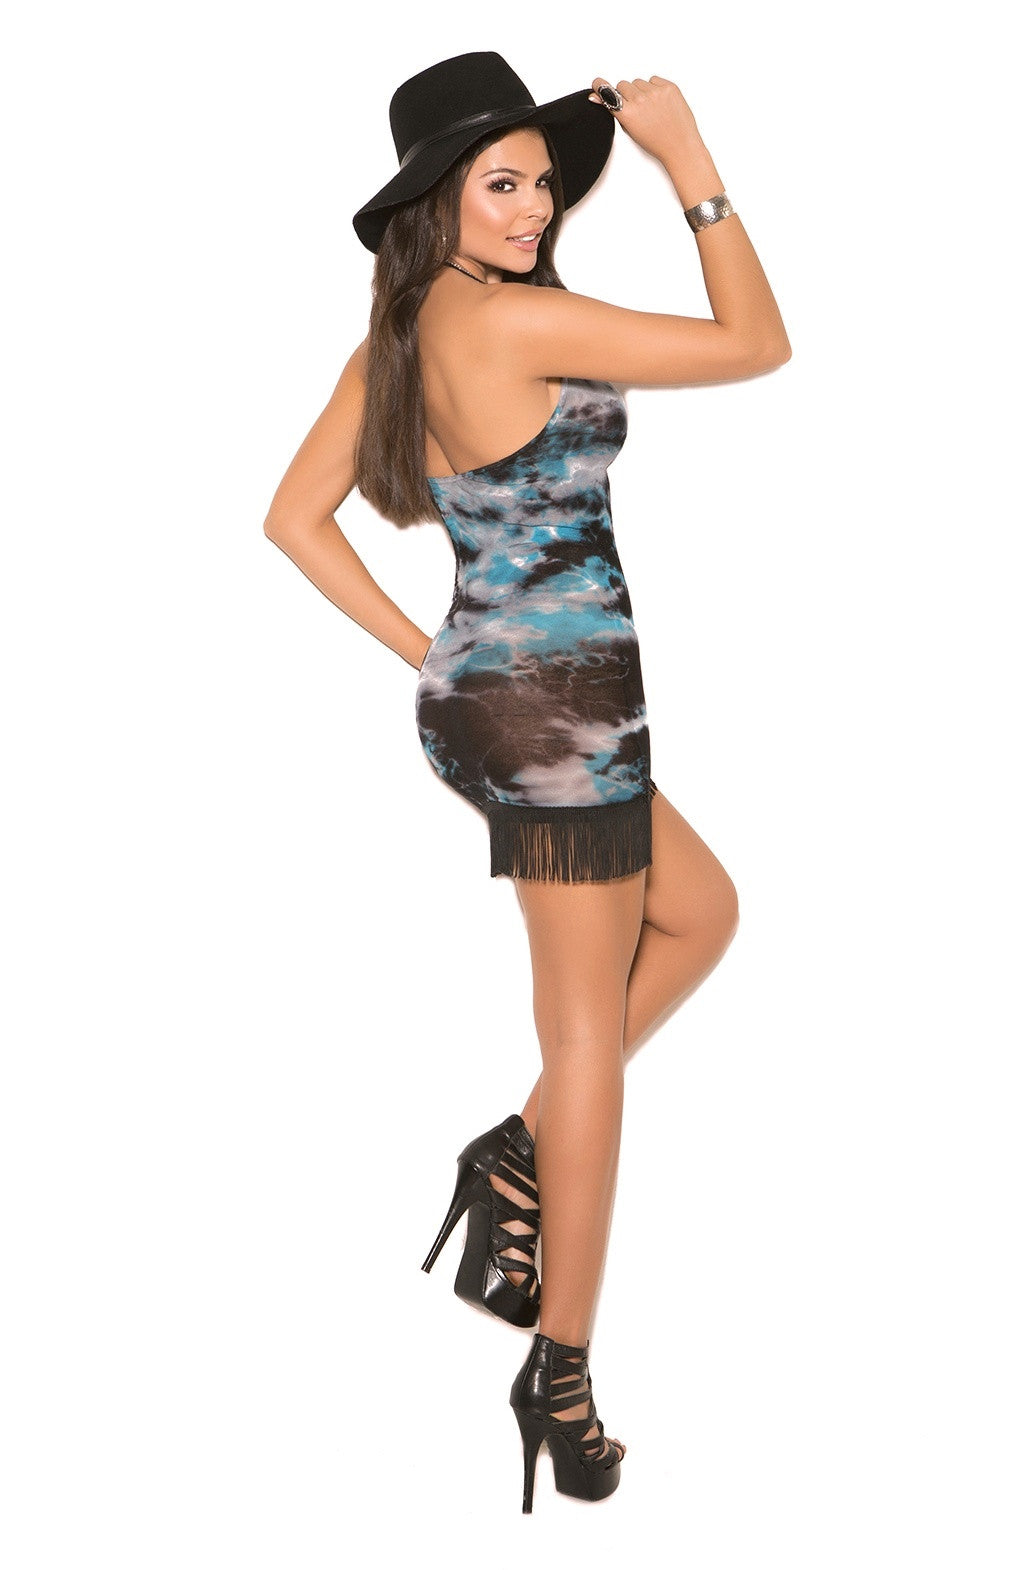 EM-82006 Colorful party dress - Sexylingerieland  - 2